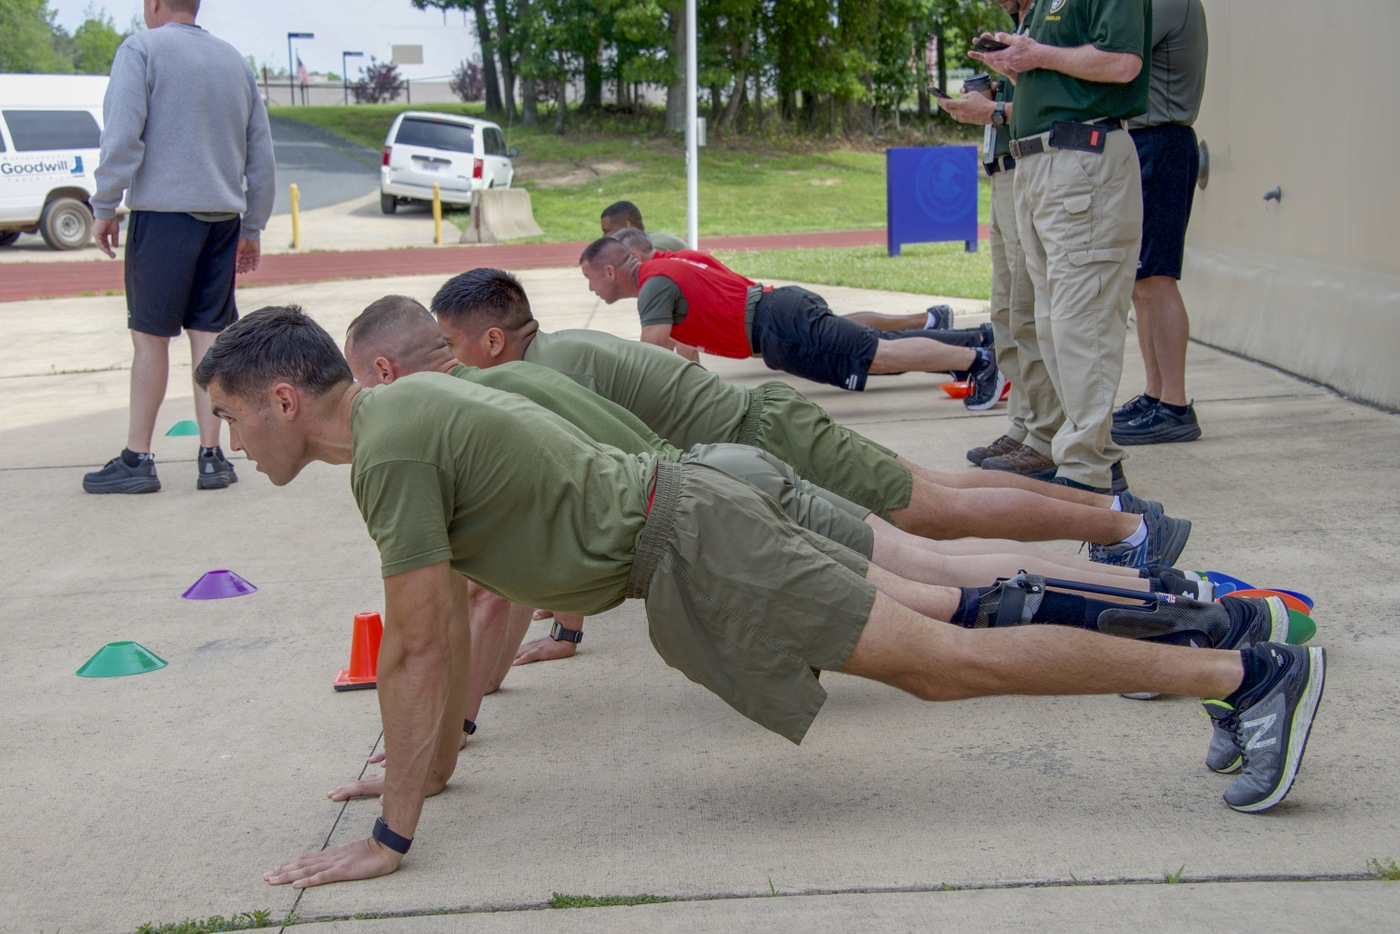 FBI, FBI National Academy, and Marine Corps participants perform planks during a May 22, 2019 training and networking event with the Marine Corps Wounded Warrior Regiment at the FBI Academy in Quantico, Virginia.